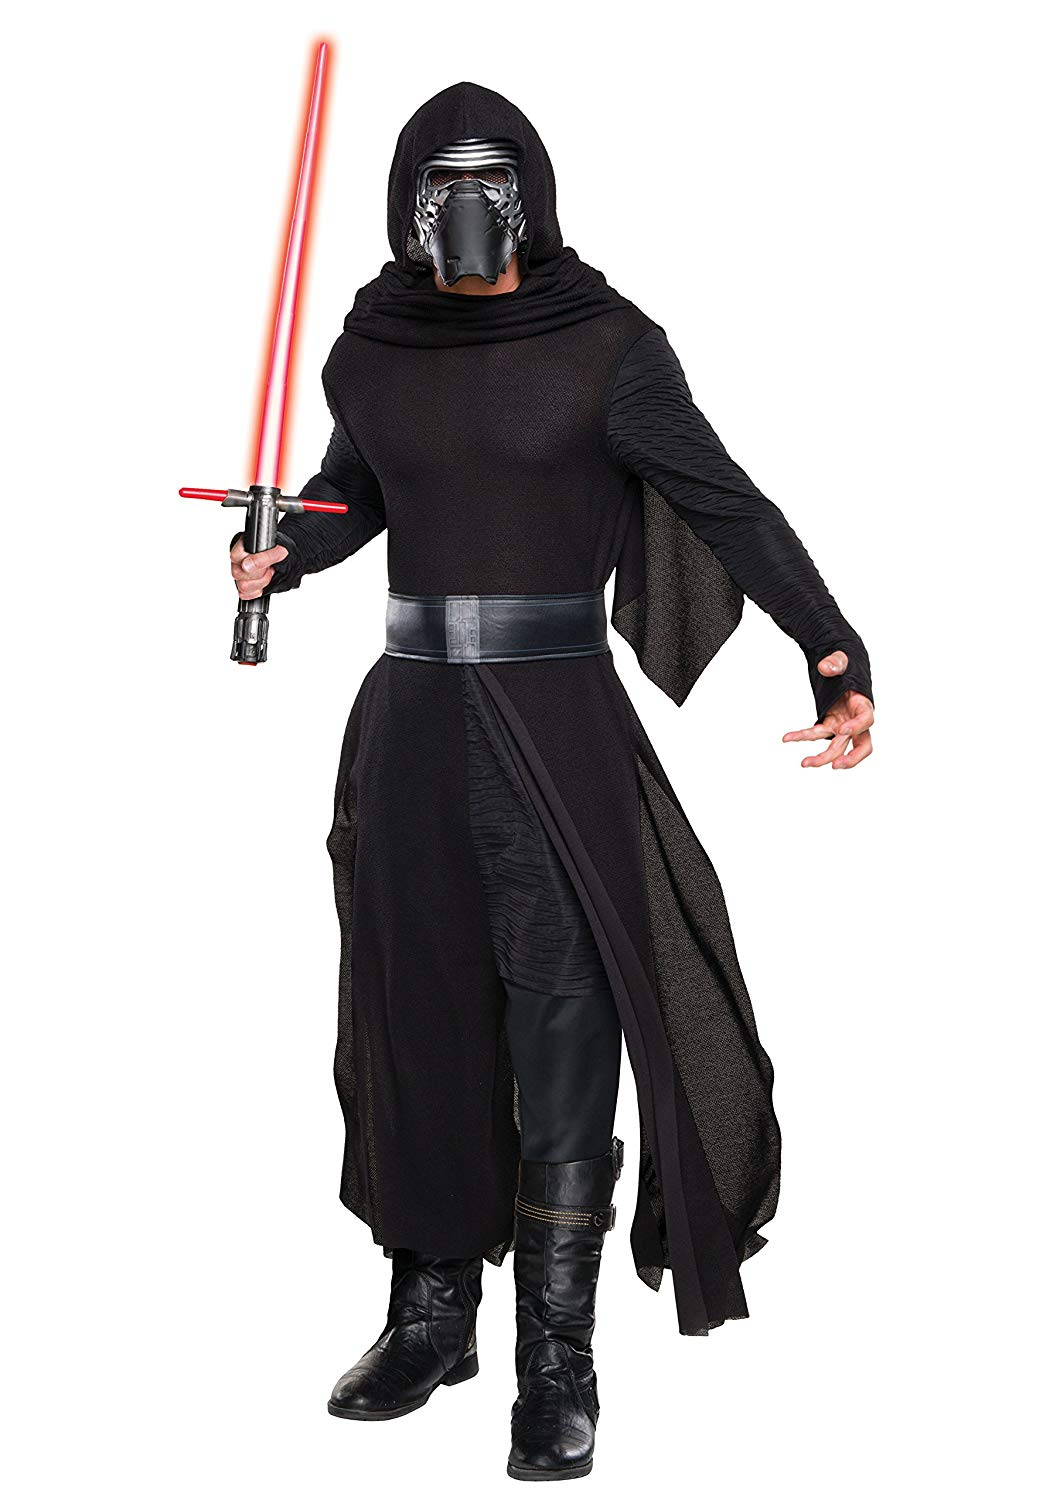 """Adam Driver has been killing it in each of his roles, especially as the struggling villain in the most recent """"Star Wars"""" trilogy, which is scheduled to end in December 2019 with """"Star Wars: The Rise of Skywalker."""" This costume is a """"Star Wars Episode VII: The Force Awakens"""" officially-licensed deluxe piece that includes a robe, hooded cape, belt, and mask (wear with your own pants and boots).Buy: Men's costume (pictured), $20.71 to $93.19RELATED: Rey Costume for Women and Teen Girls"""